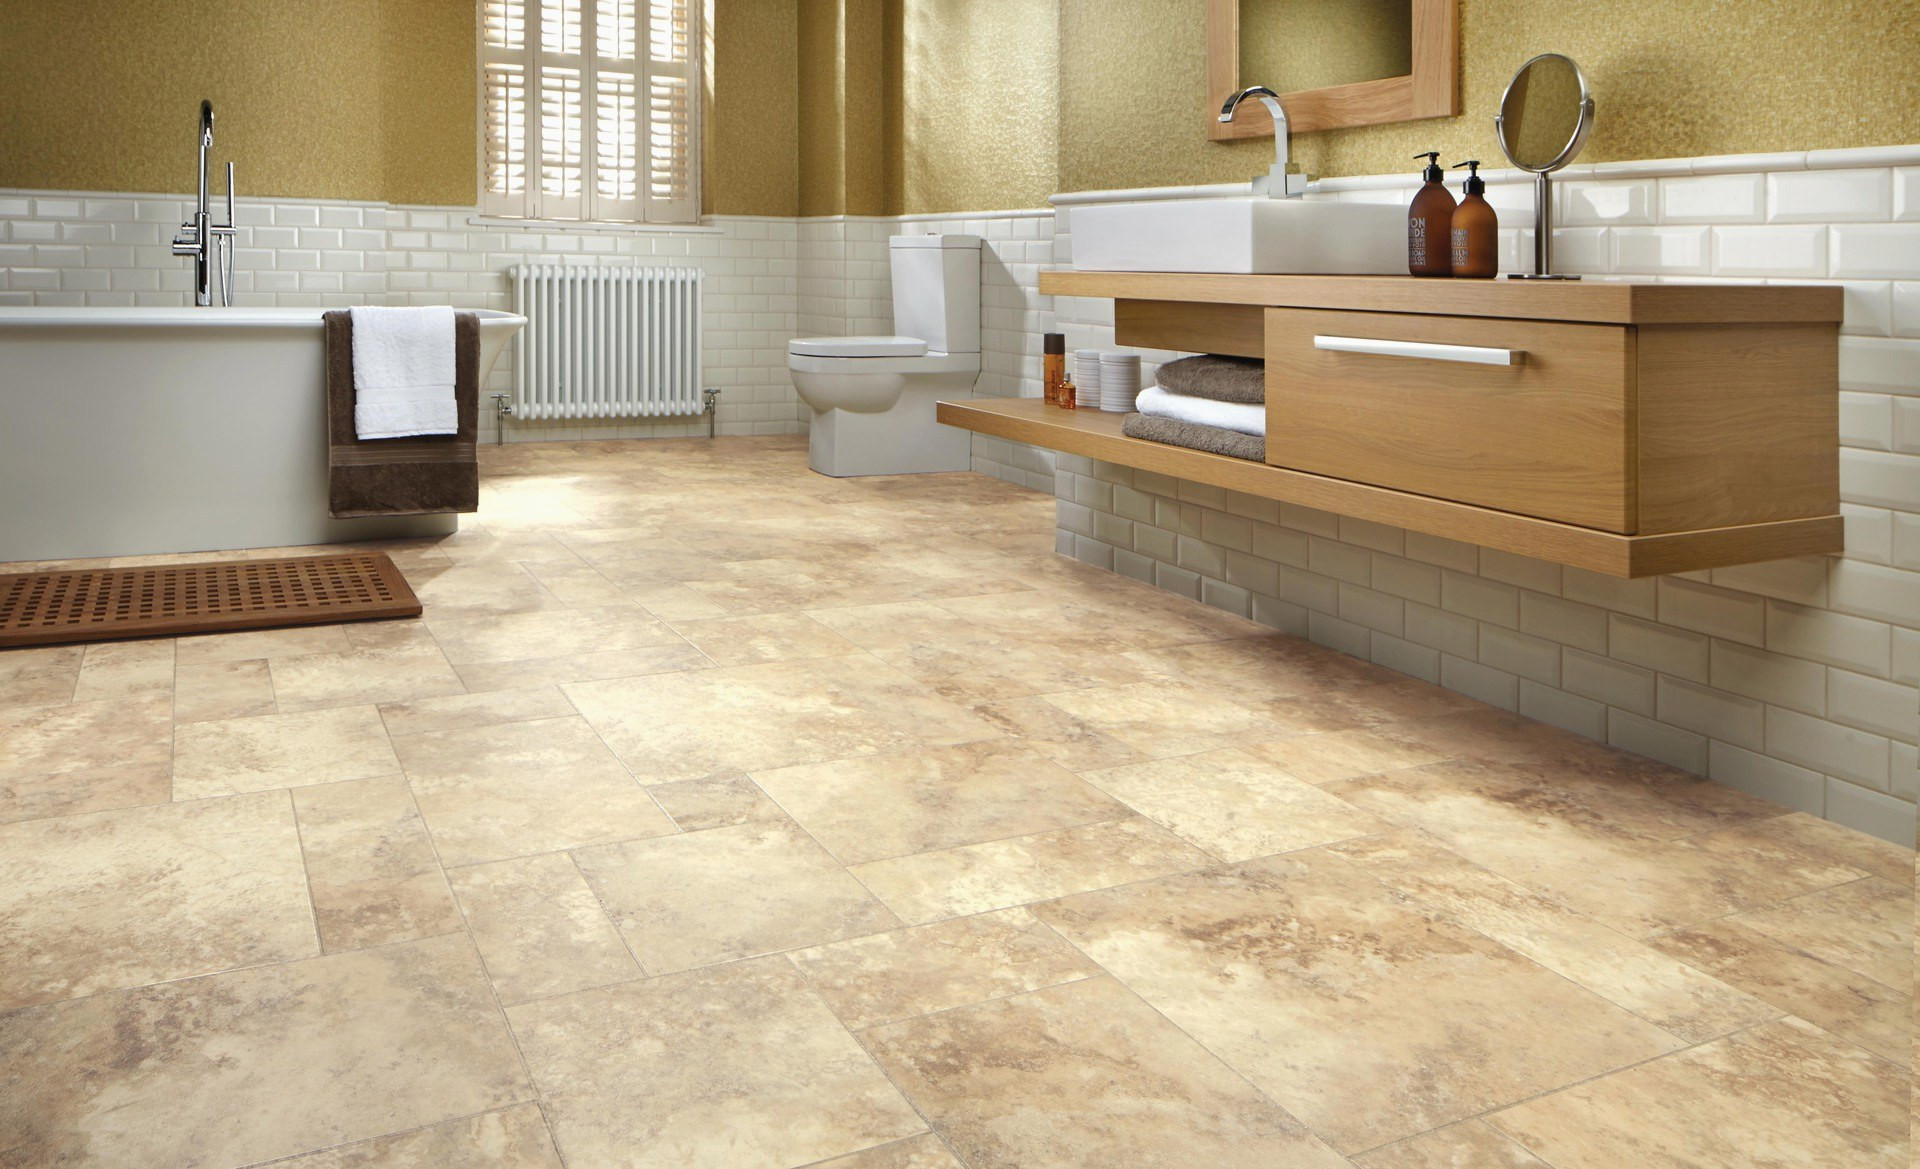 lowes hardwood flooring on sale of laminate tile flooring lowes fresh perfect floating tile floor lowes in laminate tile flooring lowes fresh perfect floating tile floor lowes best home design